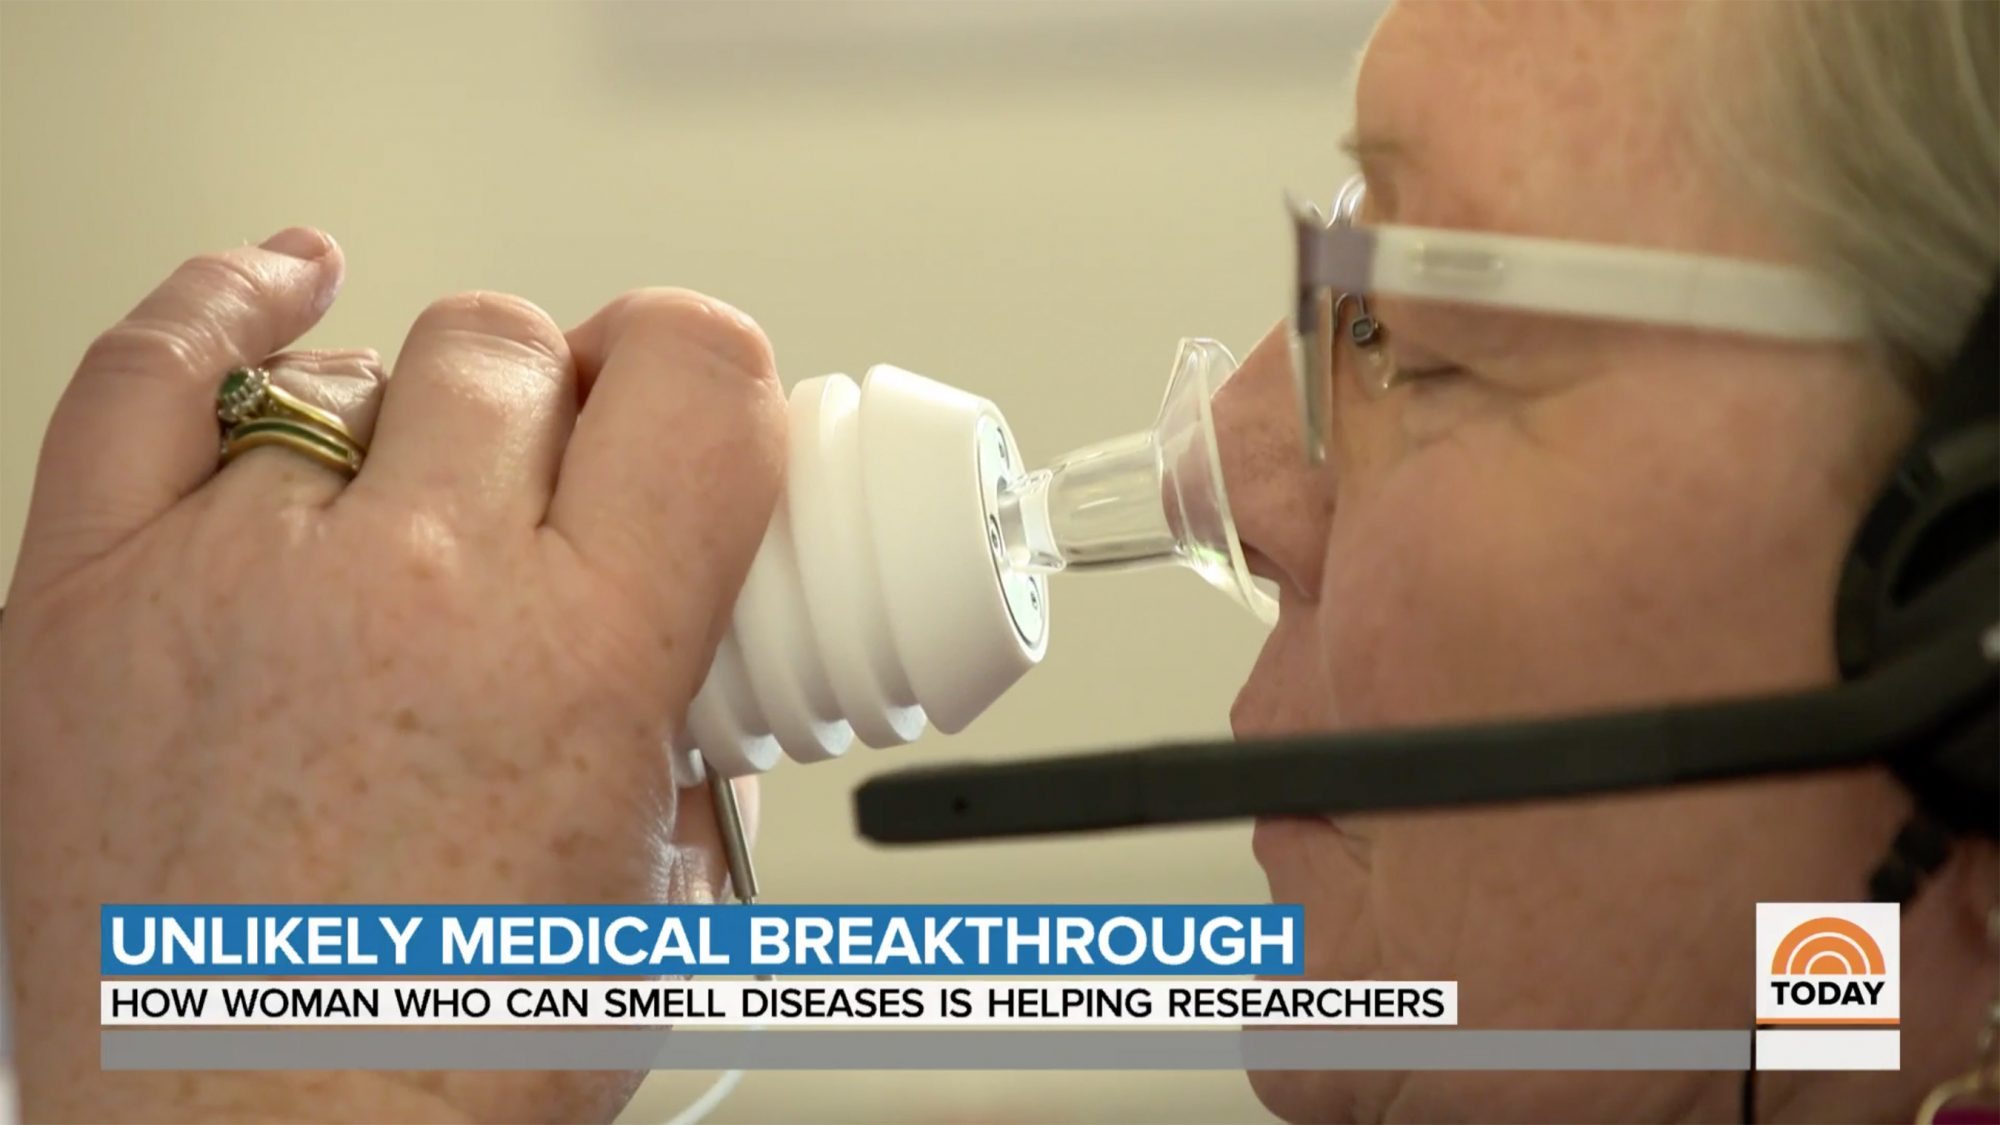 """The remarkable """"supersense"""" of Joy Milne, a grandmother from Scotland who detected her husband's Parkinson's disease by recognizing a change in his scent, has been the basis of a groundbreaking new test created by researchers. NBC's Kelly Cobiella reports for TODAY."""